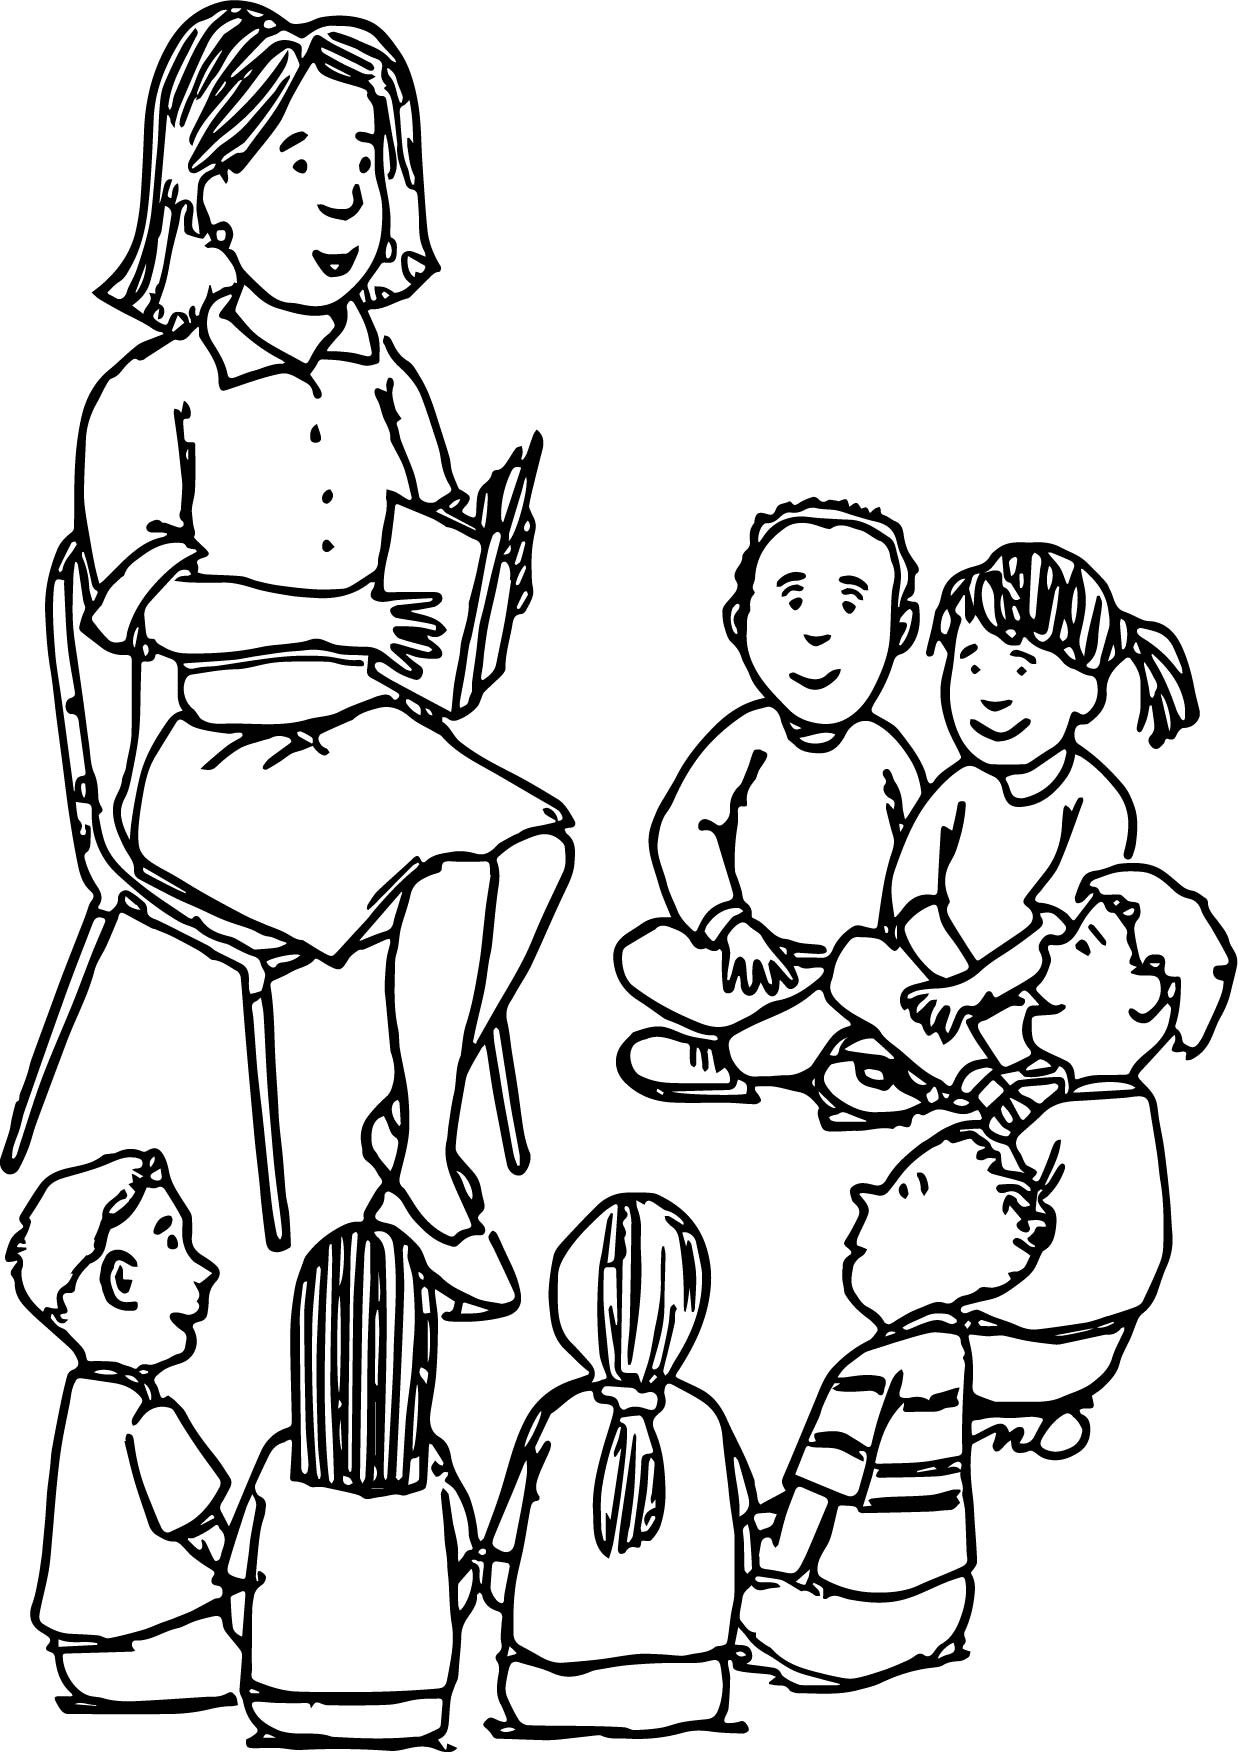 Coloring Kids  Teacher Coloring Pages Best Coloring Pages For Kids